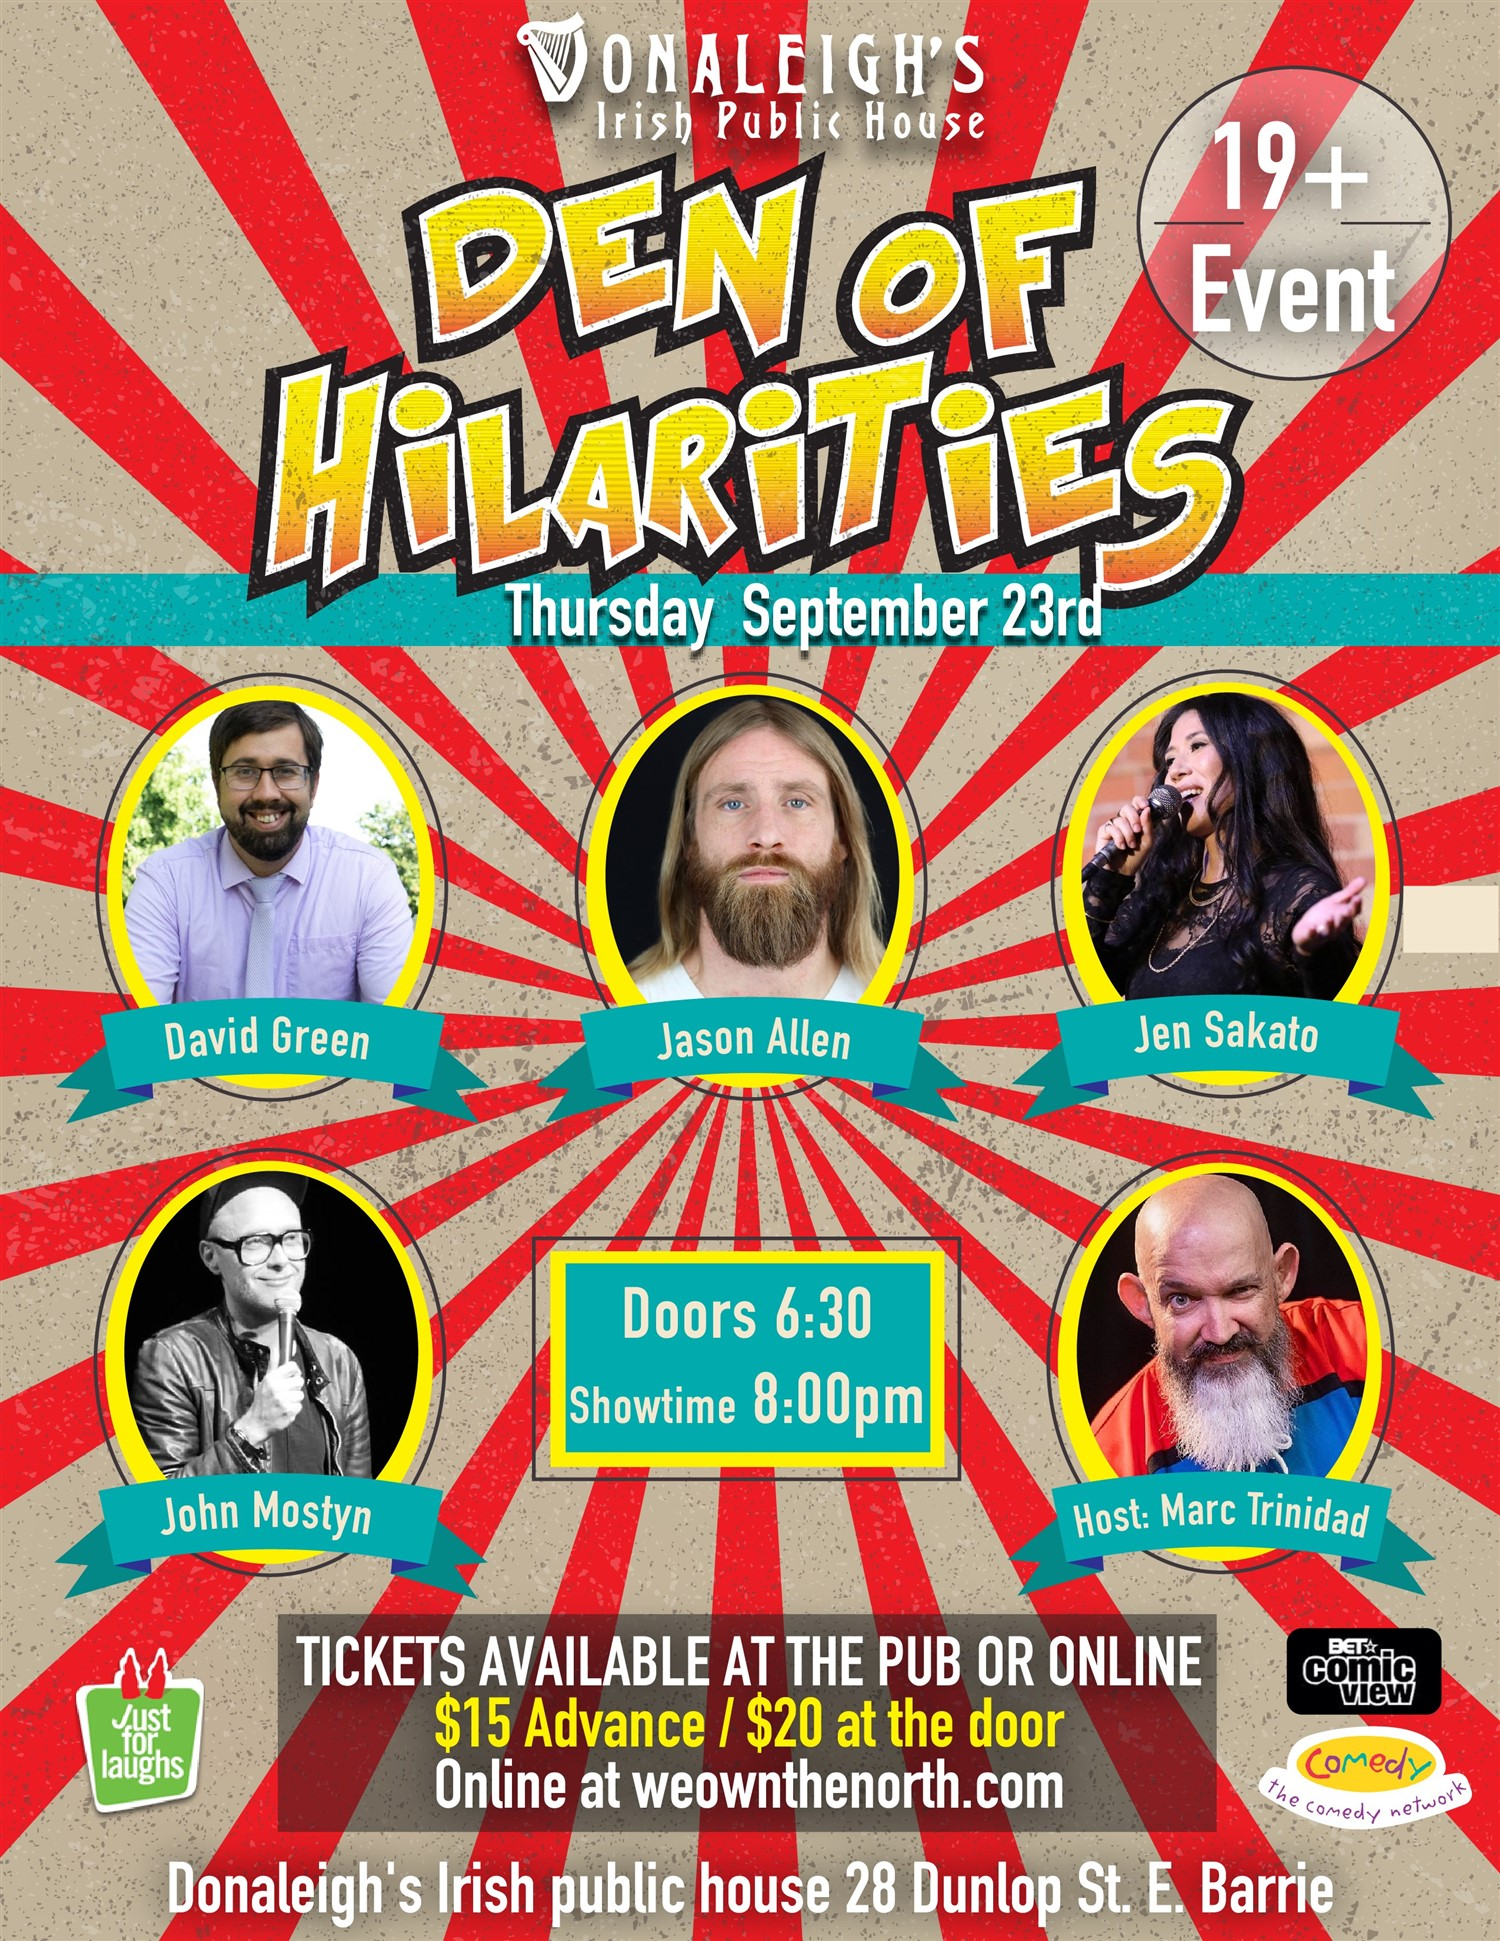 Donaleigh's Den of Hilarities Stand up Comedy on Sep 23, 20:00@Donaleigh's Irish Pub - Buy tickets and Get information on Marc Trinidad Ent